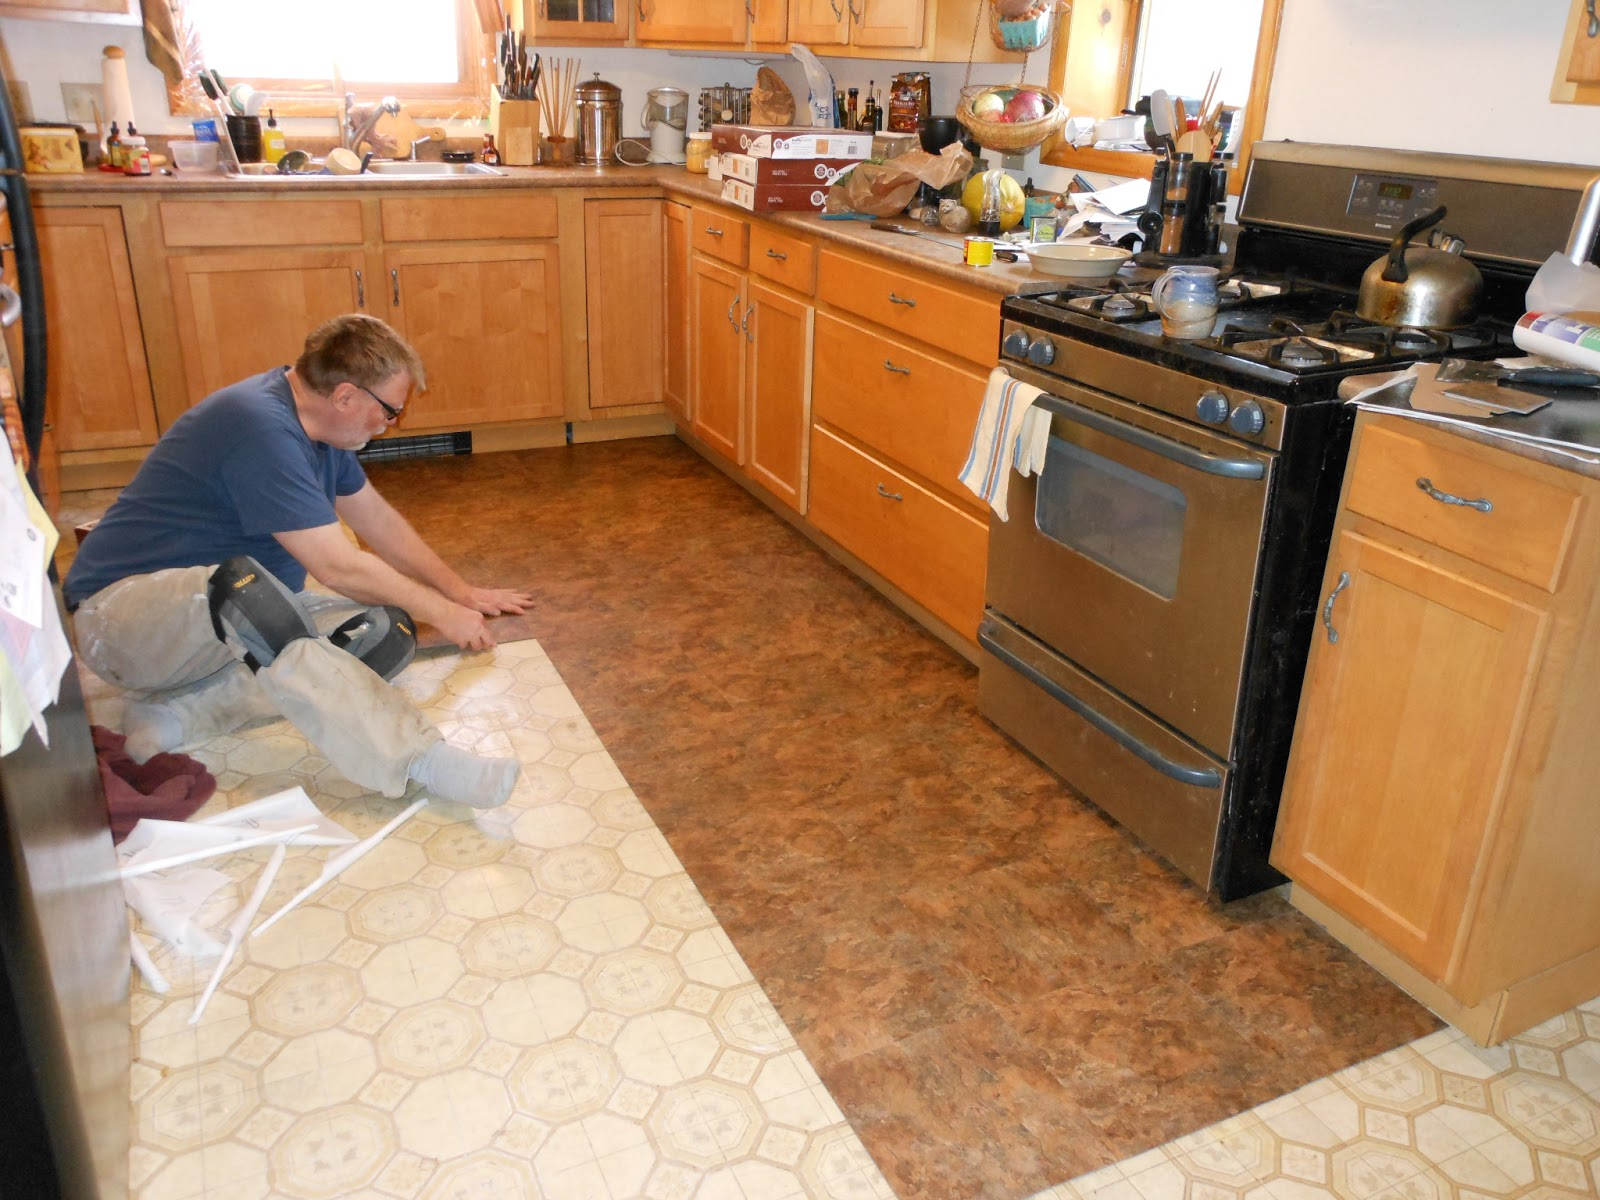 Buy Kitchen Vinyl Flooring In Dubai, ParquetFlooring.ae